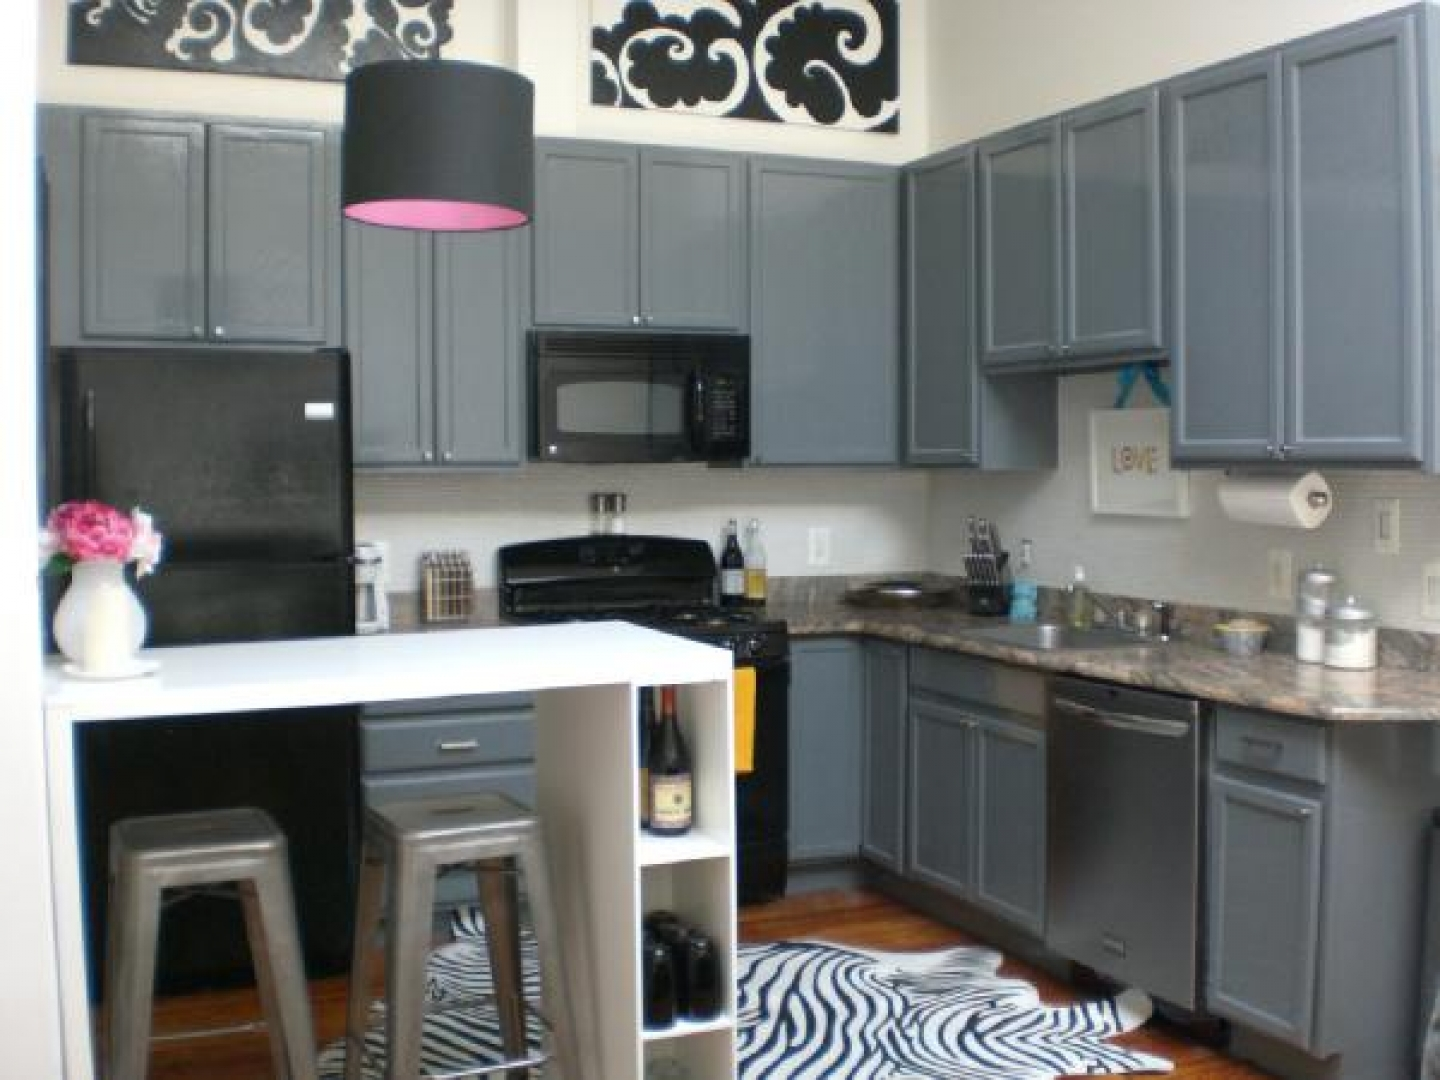 kitchen decorations zebra pink yellow aqua decoration grey gray white